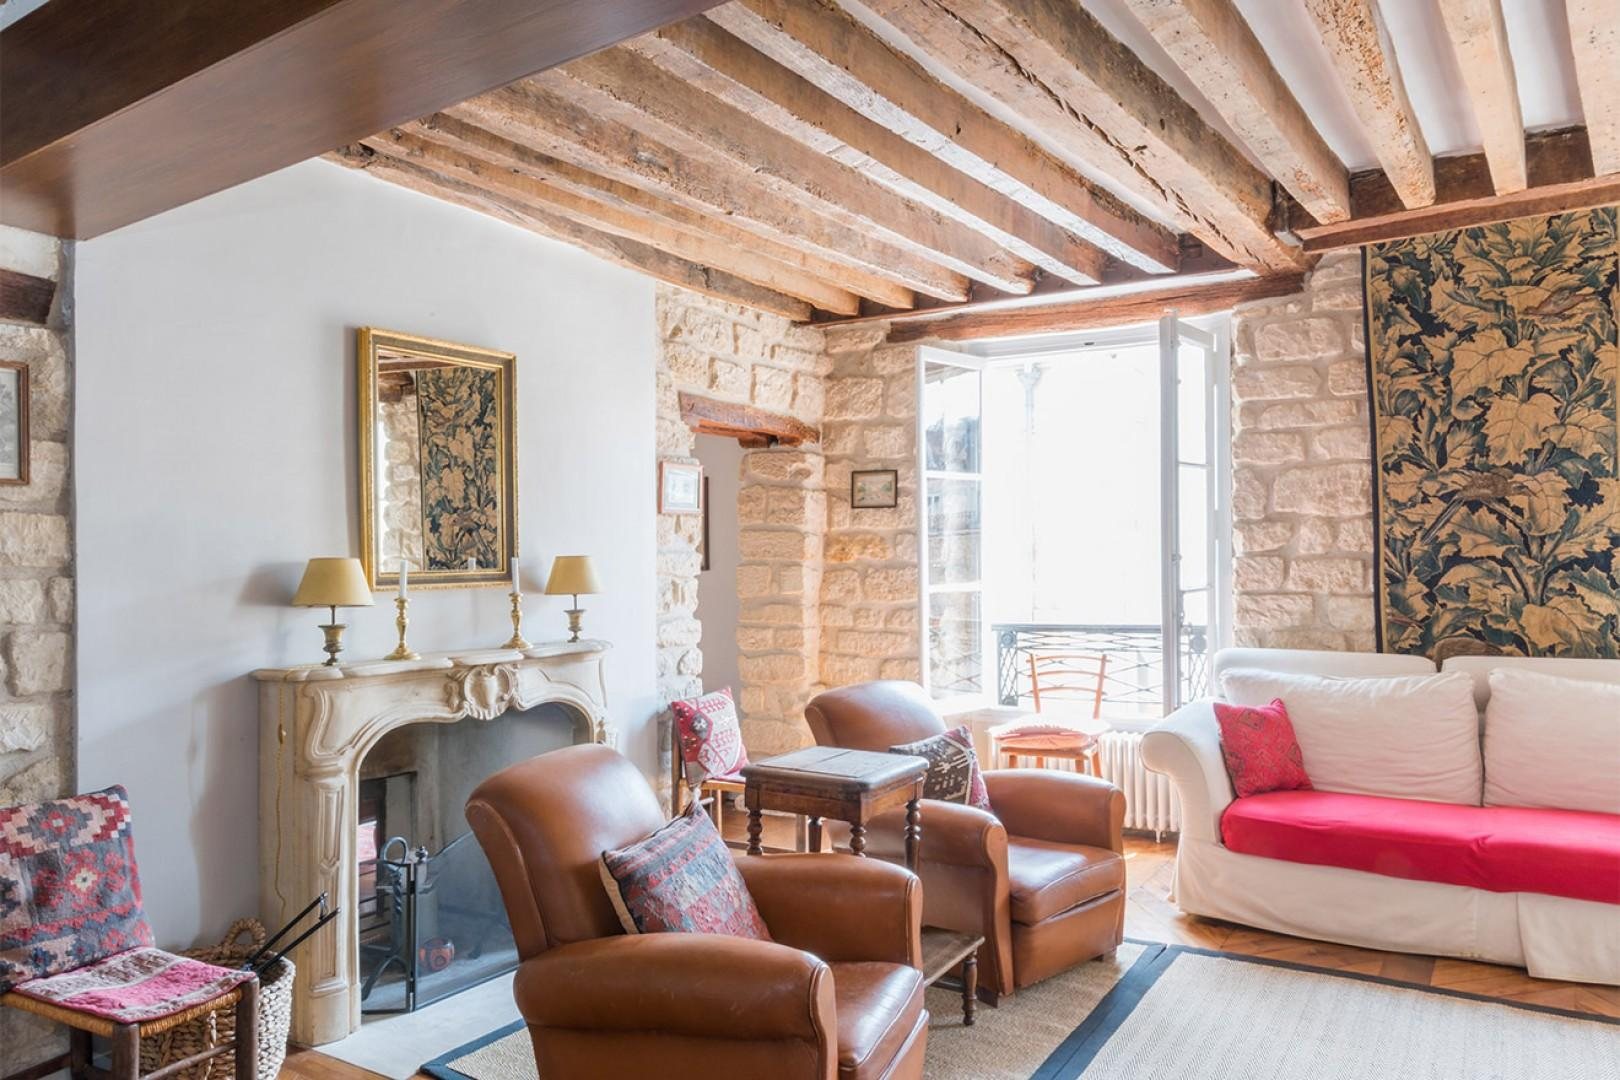 Choose this beautiful Parisian home for your holiday stay.